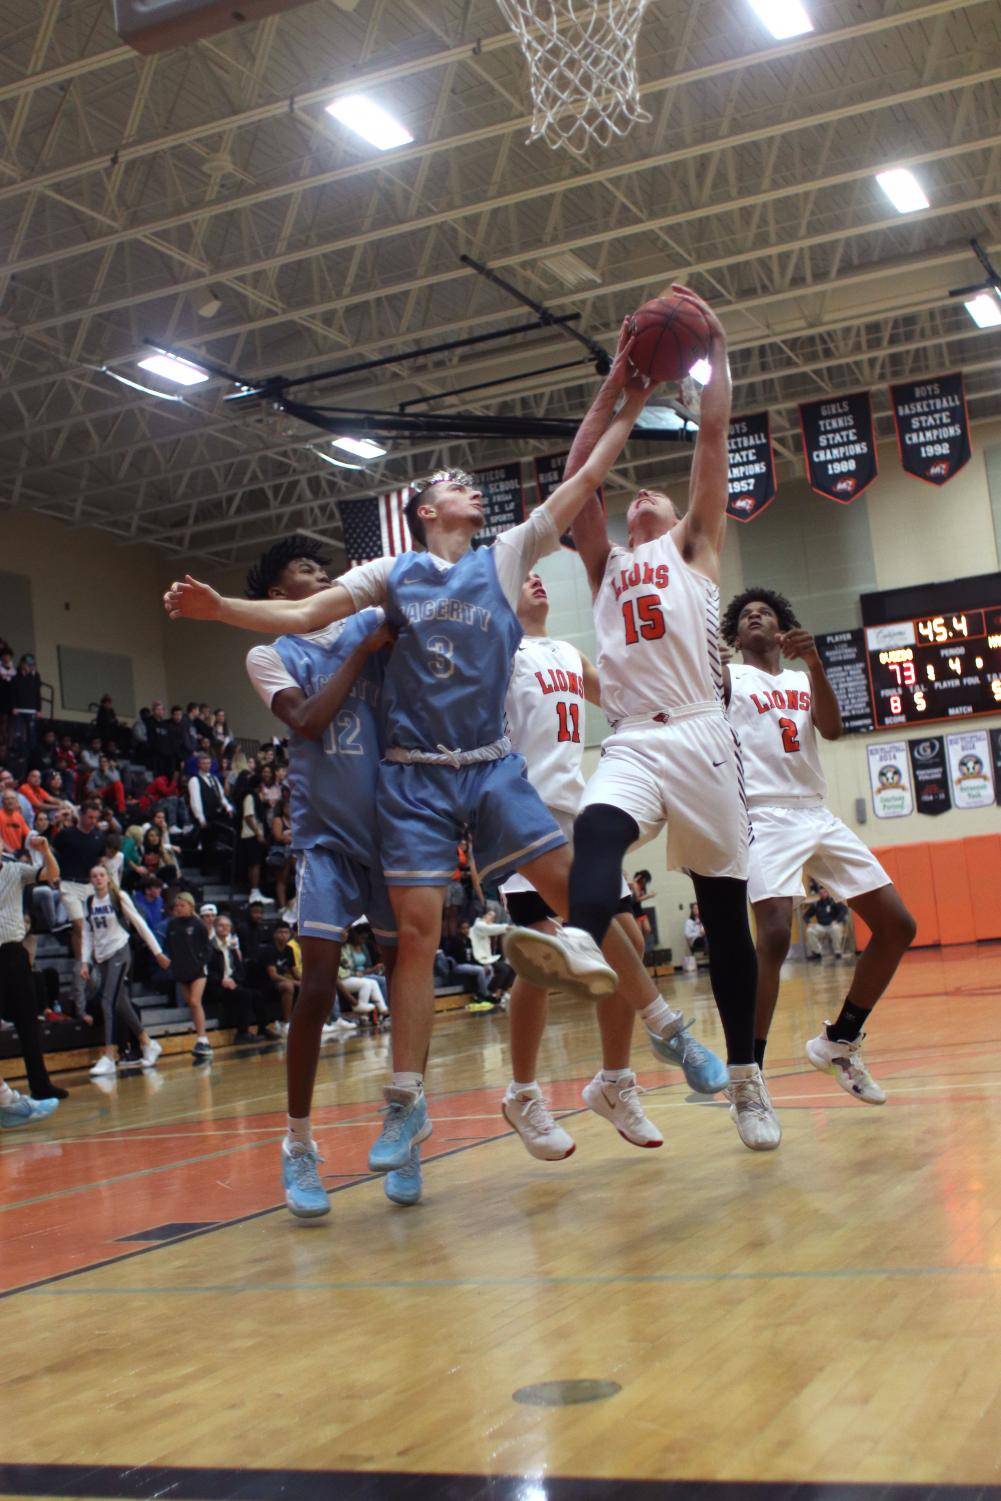 Foward Tyler Pate attempts to rebound a ball against an Oviedo off ender. The team would lose that game, 52-72.